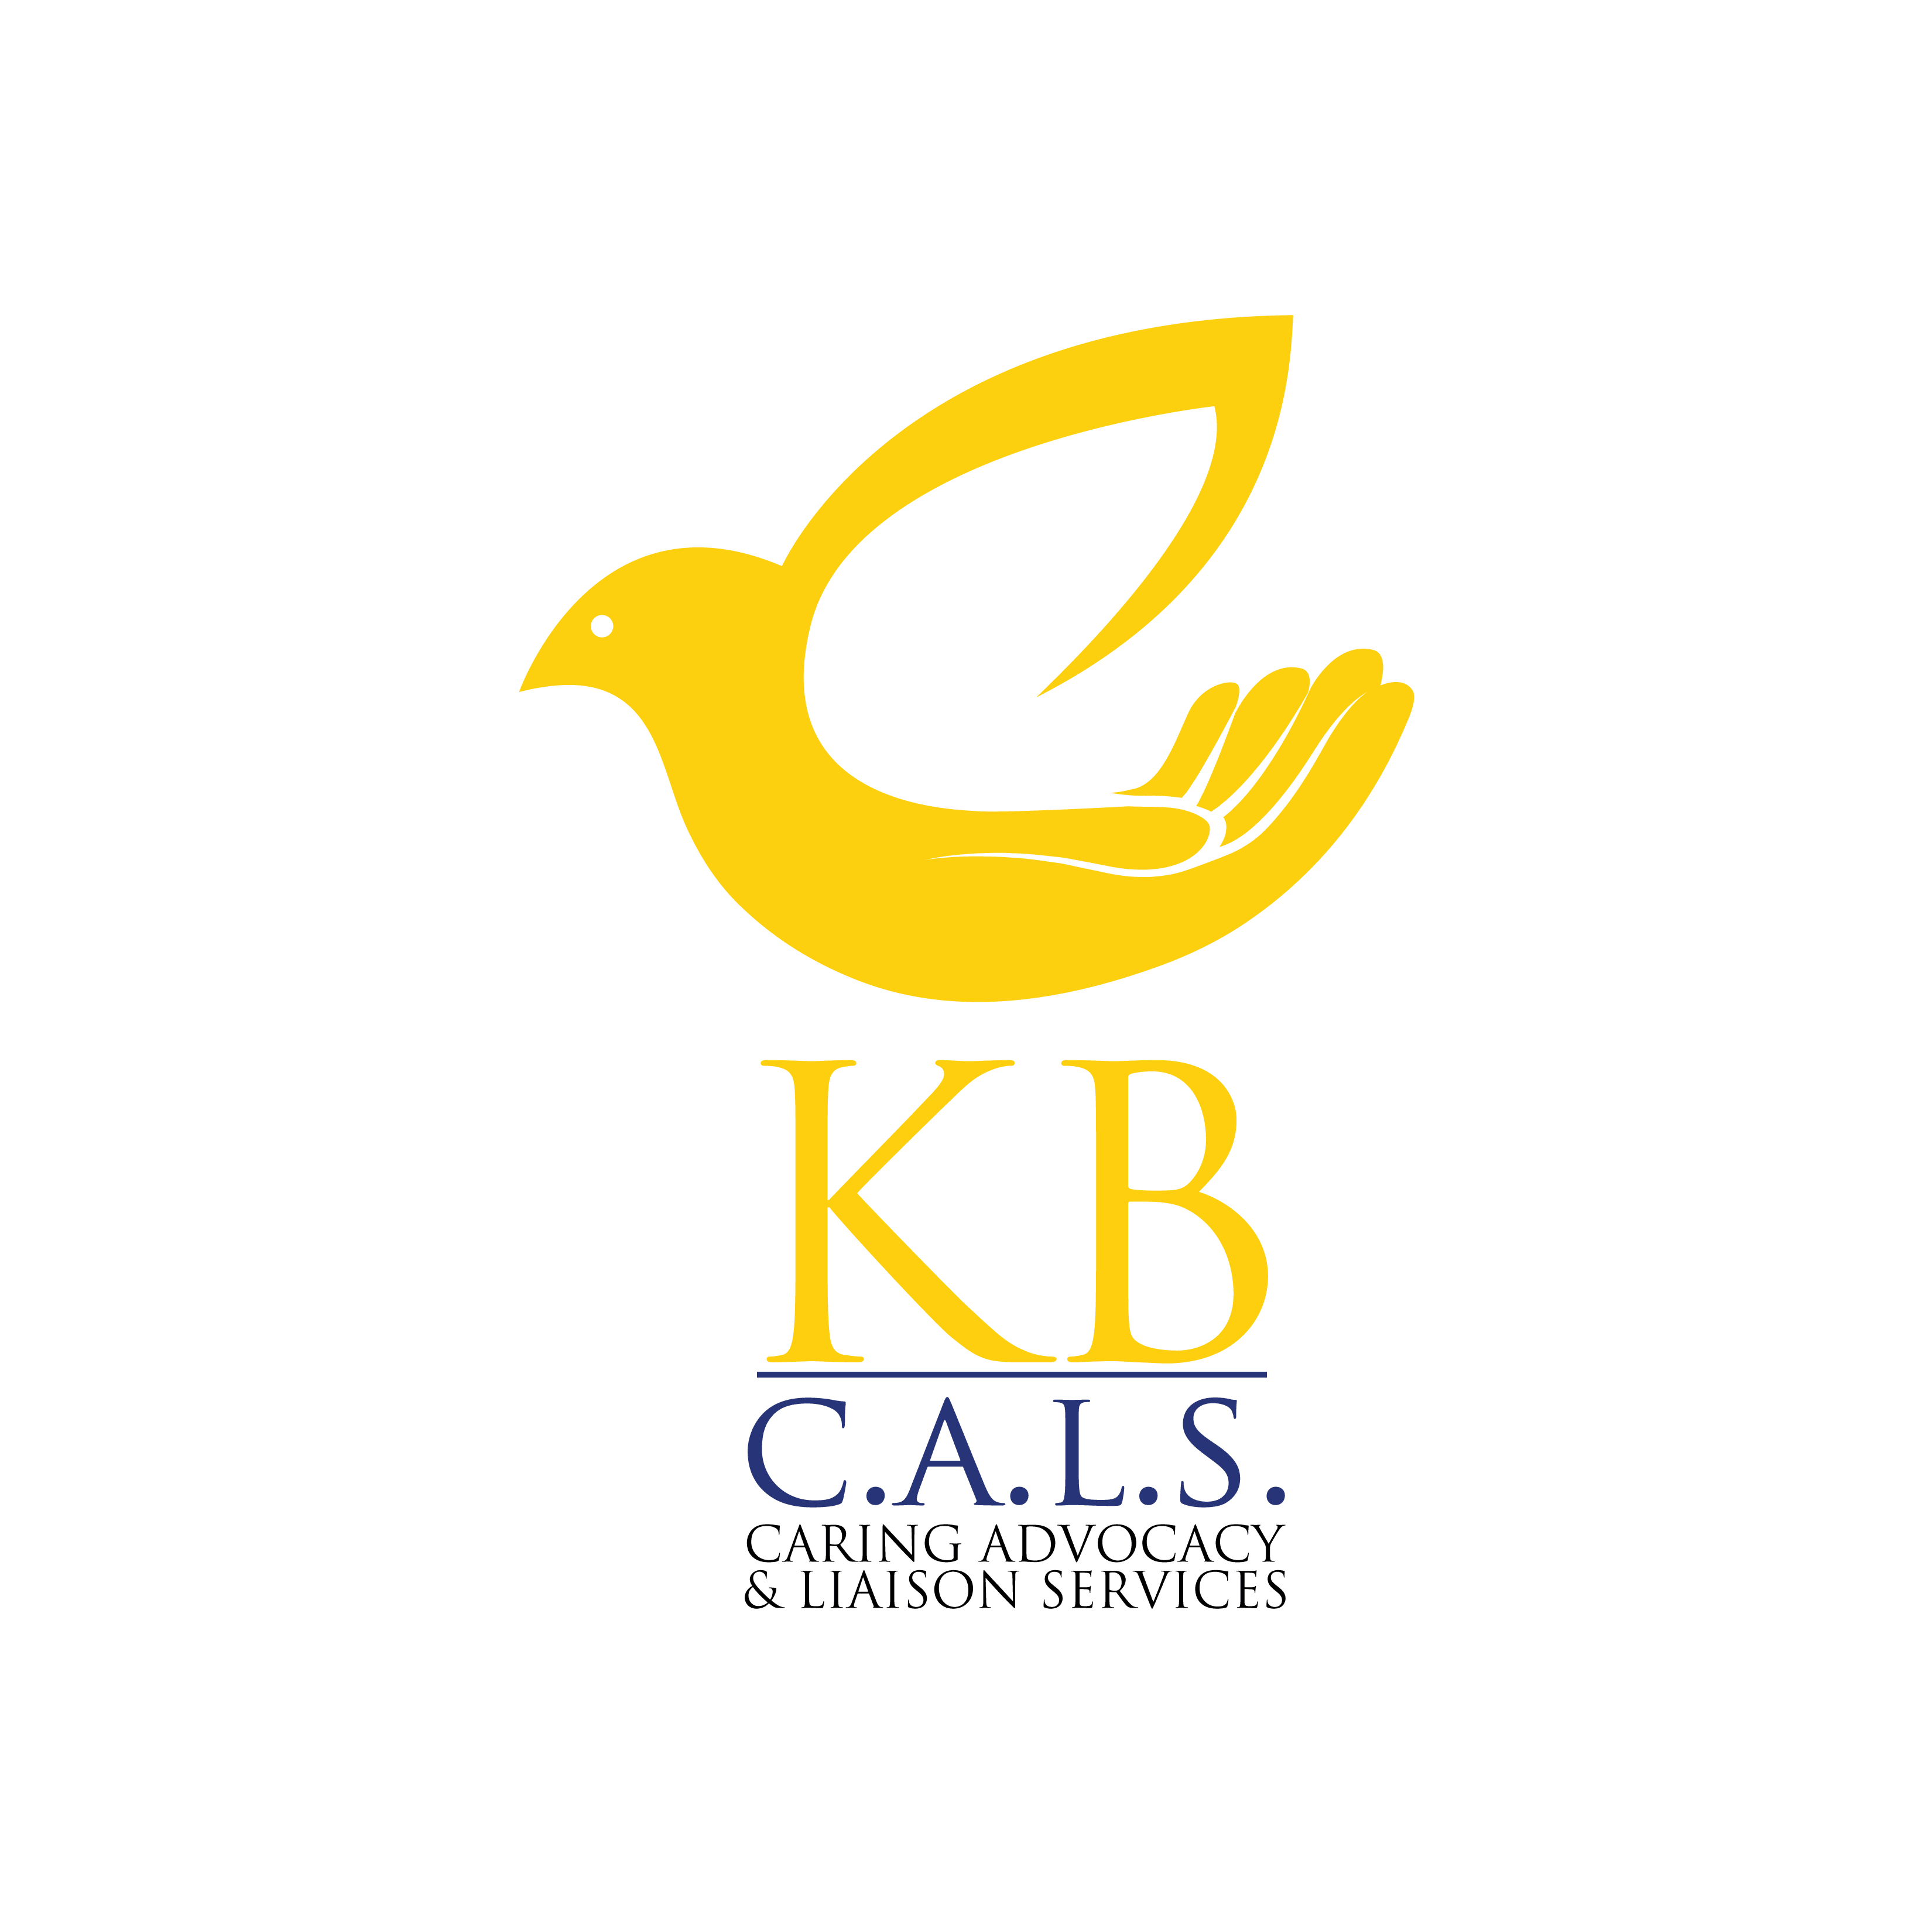 KB CALS - Caring Advocacy & Liaison Services